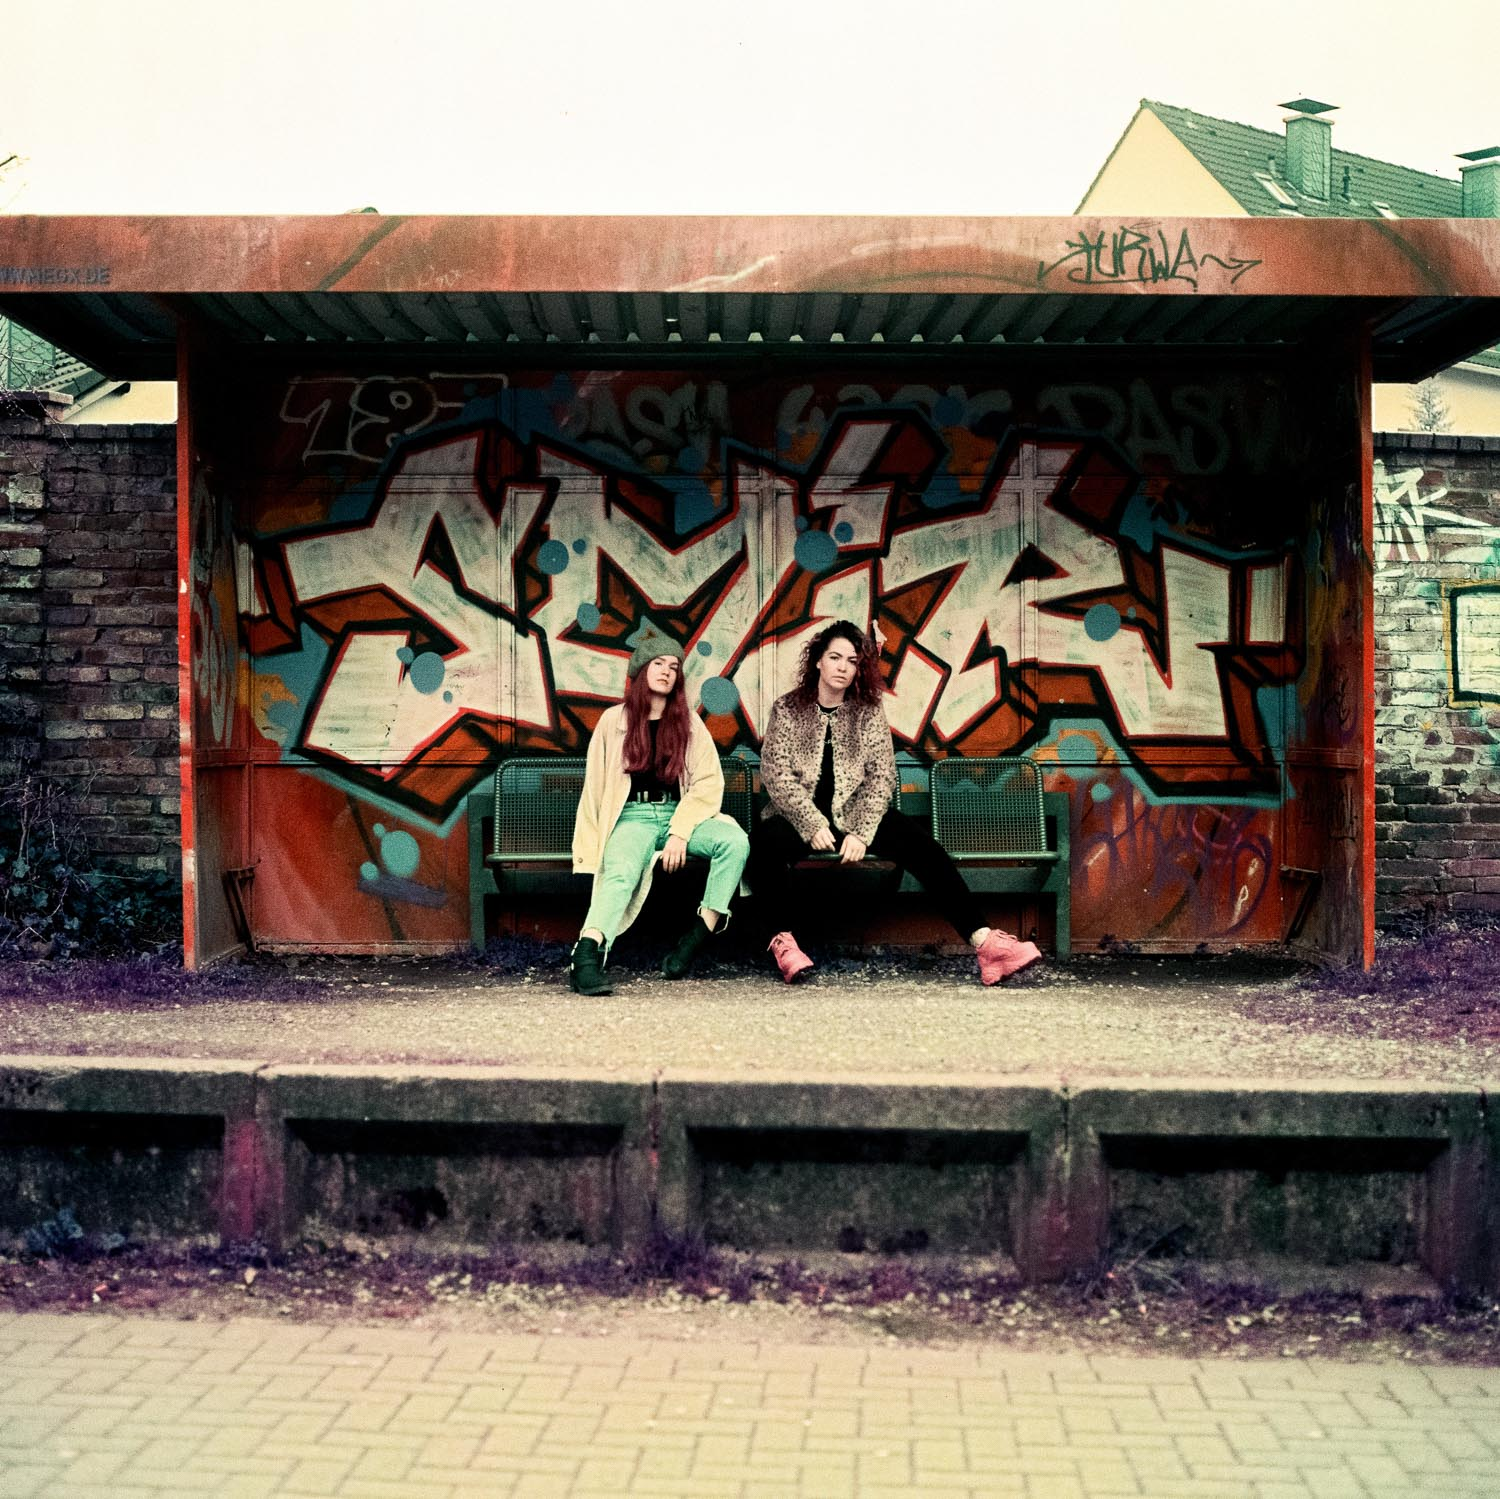 Analog-Fotoshooting-5